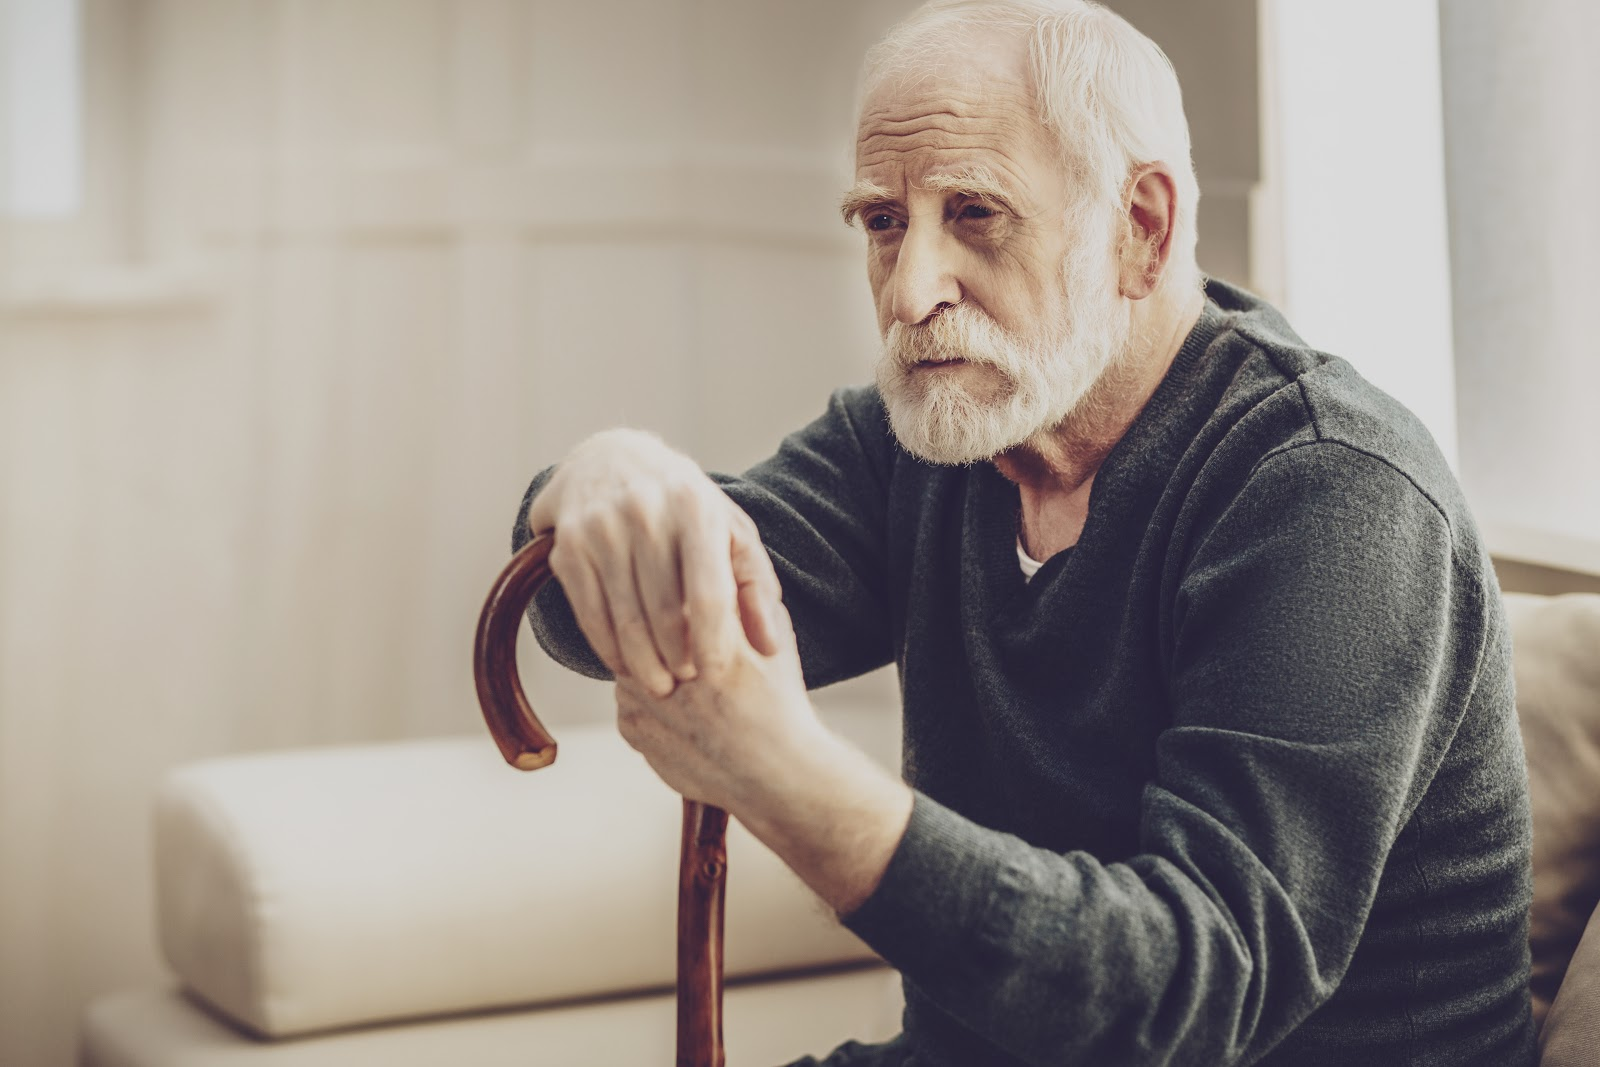 An elderly man lost in thought